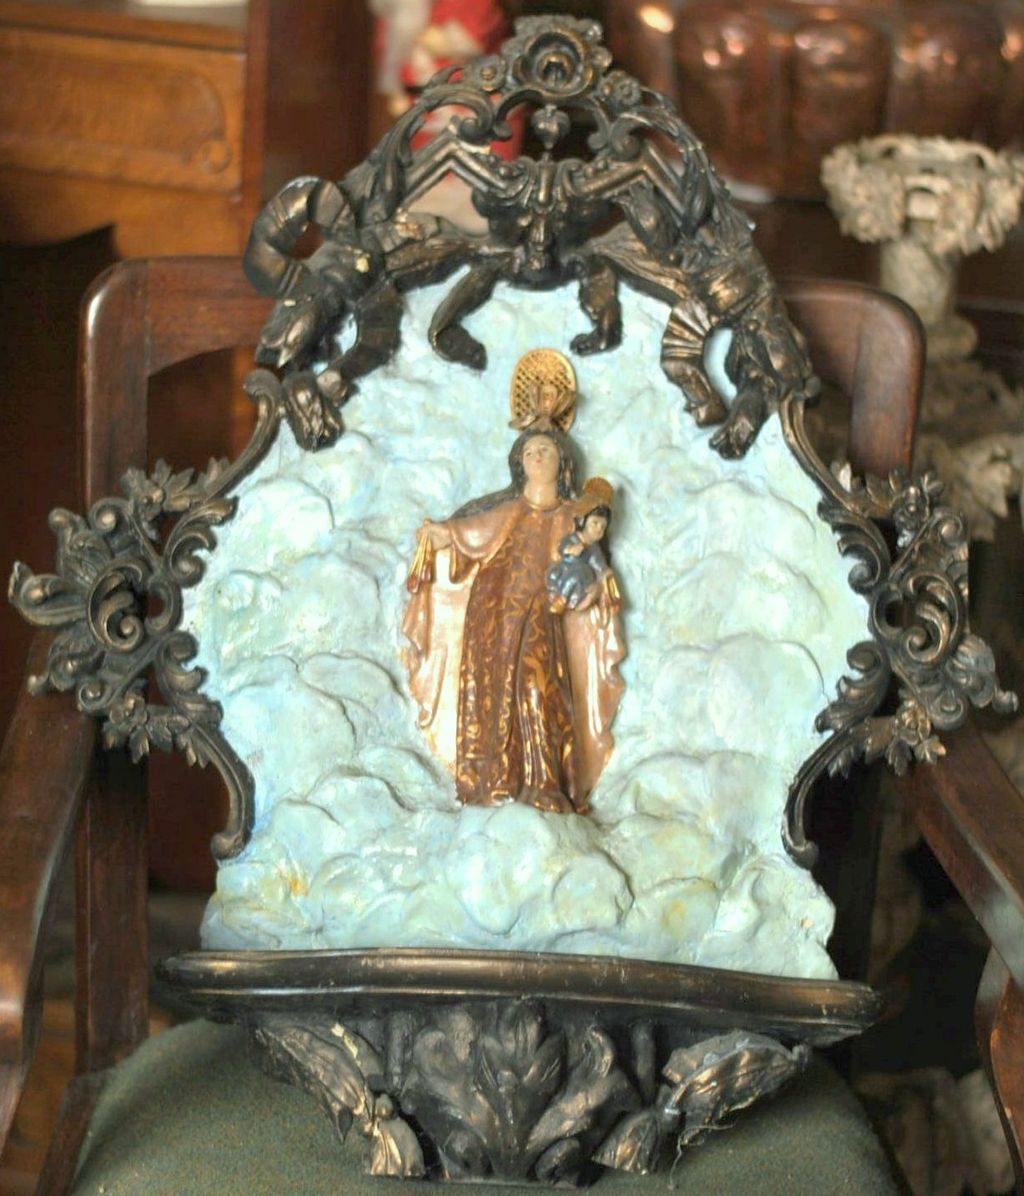 Large Ornate Wall Shrine Retablo For The Virgin of Mt. Carmel - Peruvian Highlands